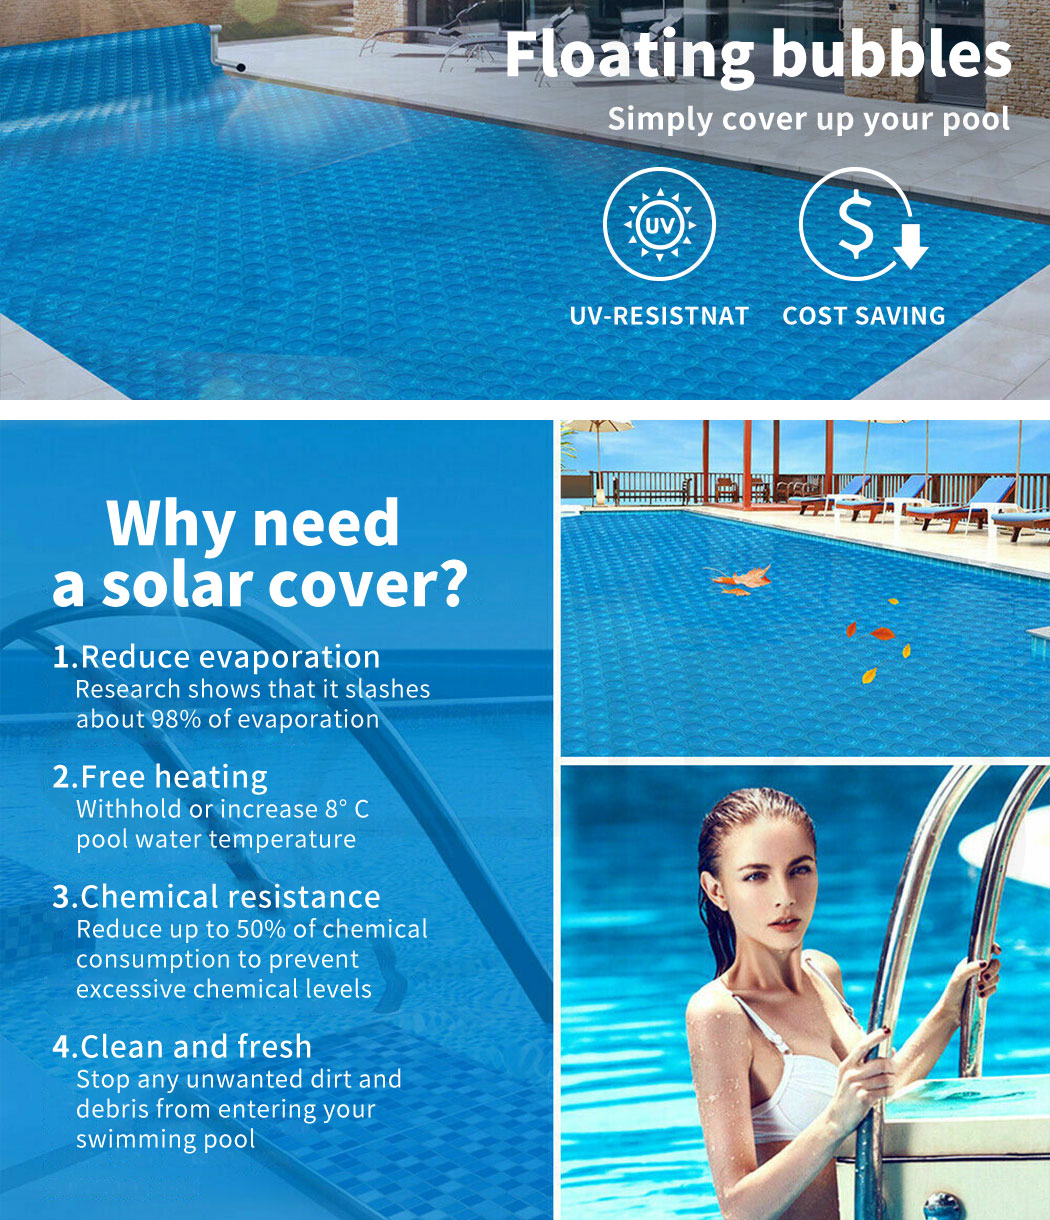 Solar-Swimming-Pool-Cover-400-500-Micron-Outdoor-Bubble-Blanket-Covers-7-Sizes thumbnail 152